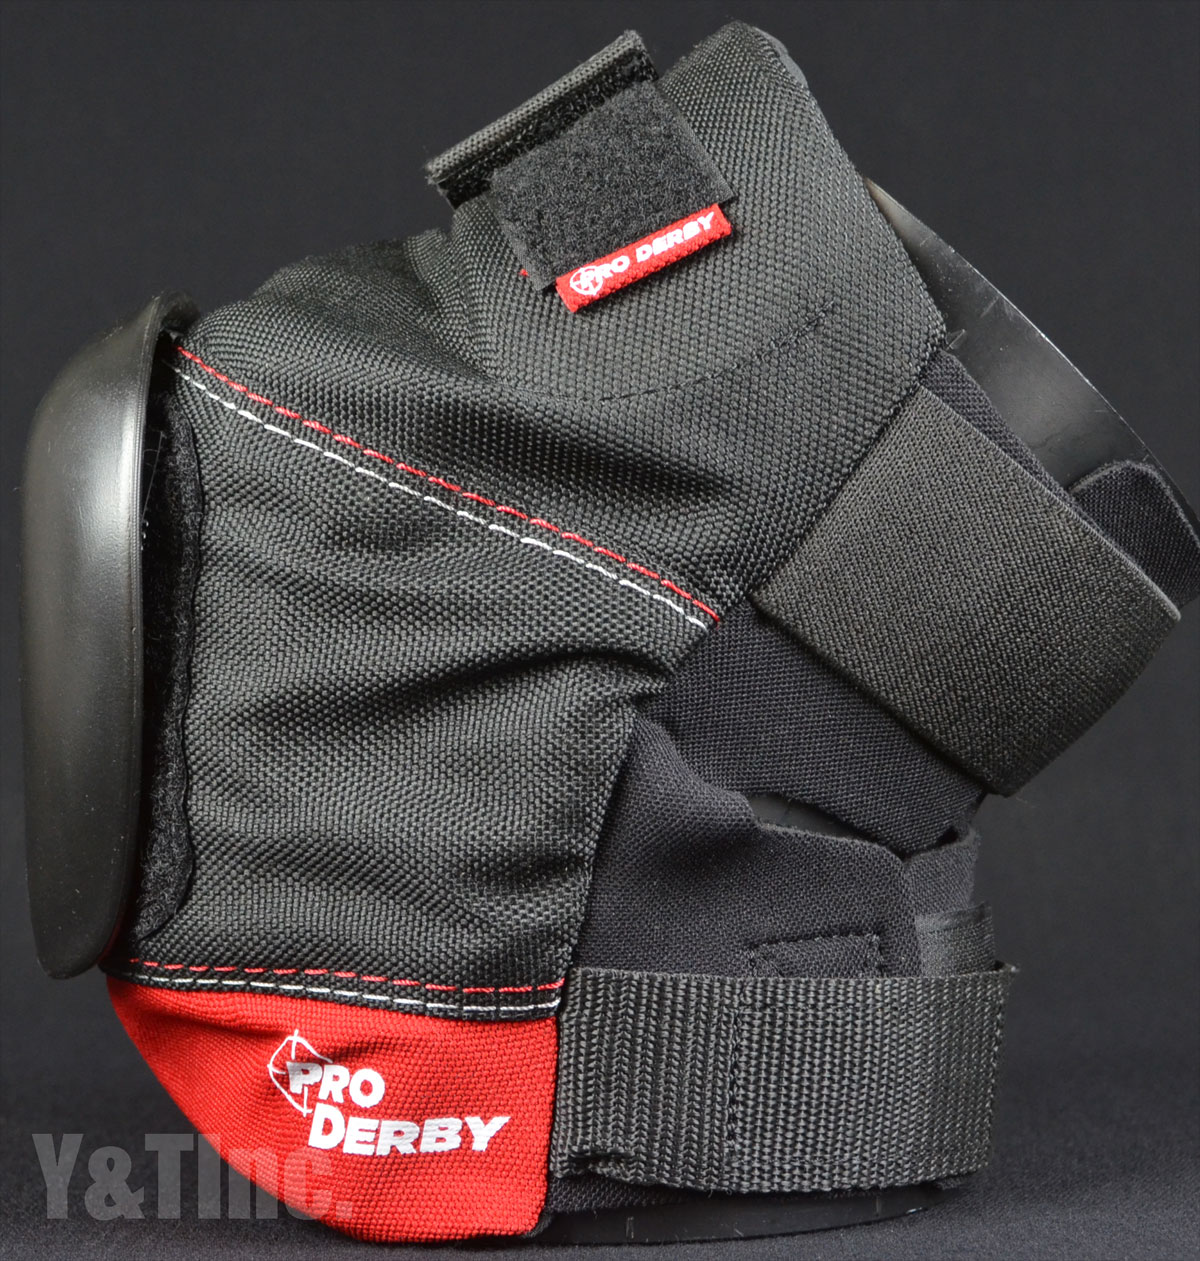 187 PRO DERBY BLACK RED M 1